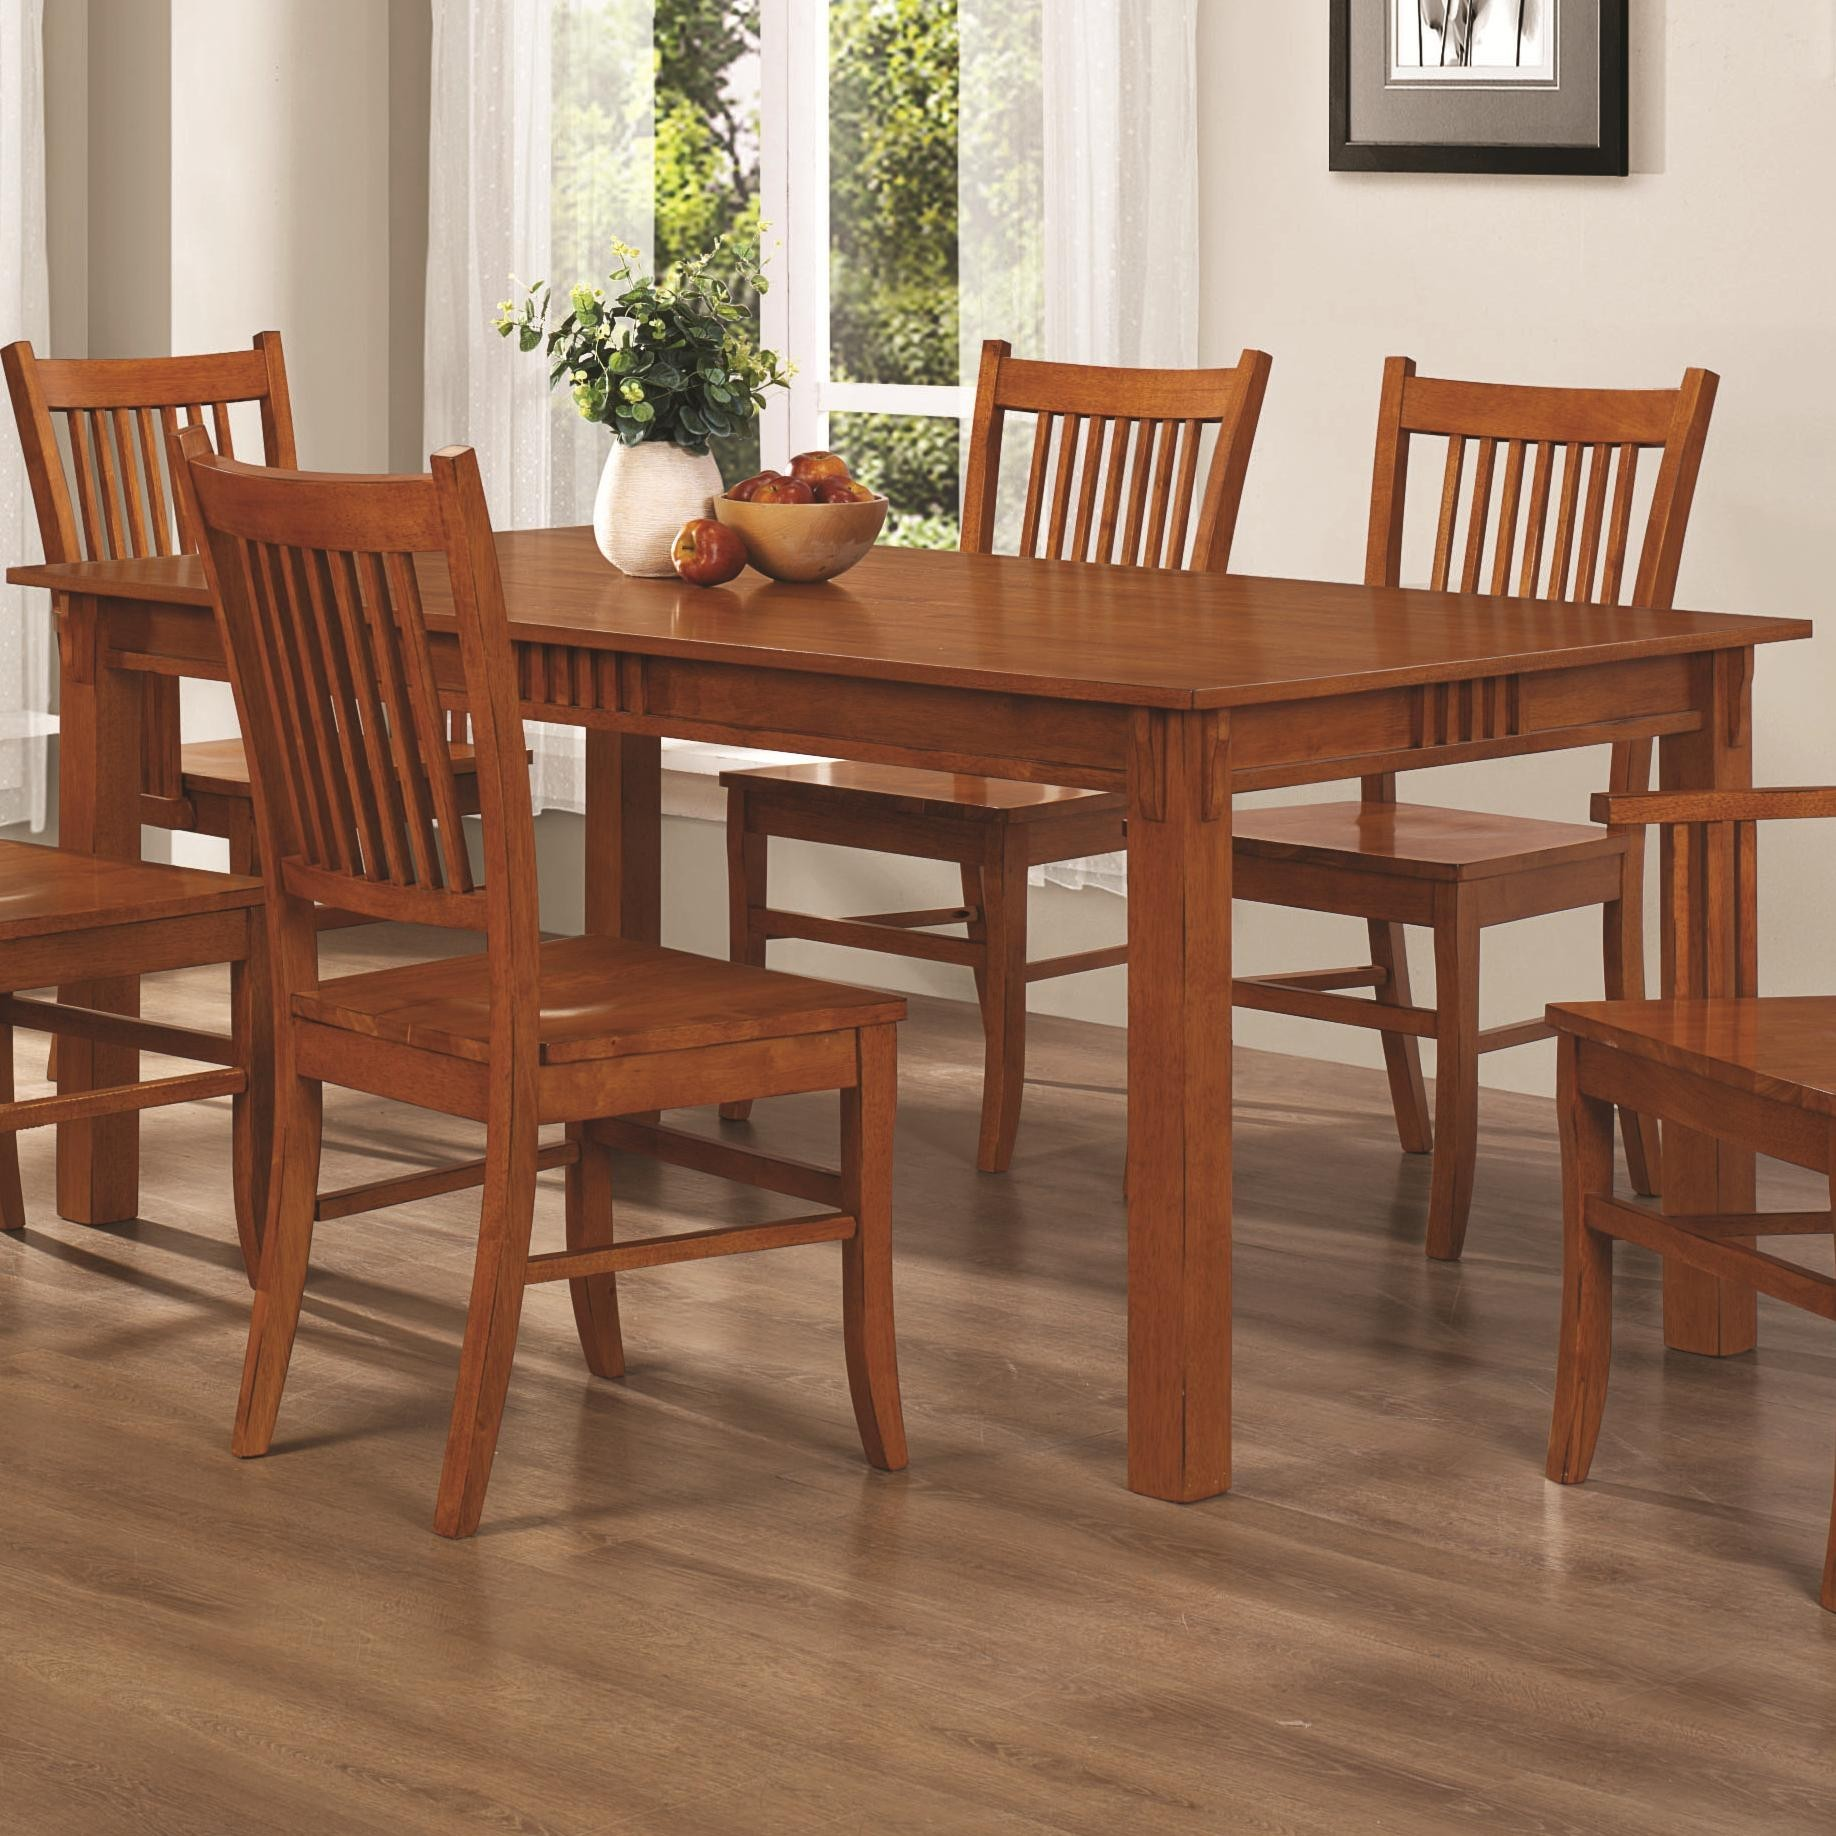 Marbrisa Rectangular Dining Table from Coaster 100621  : 1201 1 from colemanfurniture.com size 1836 x 1836 jpeg 486kB